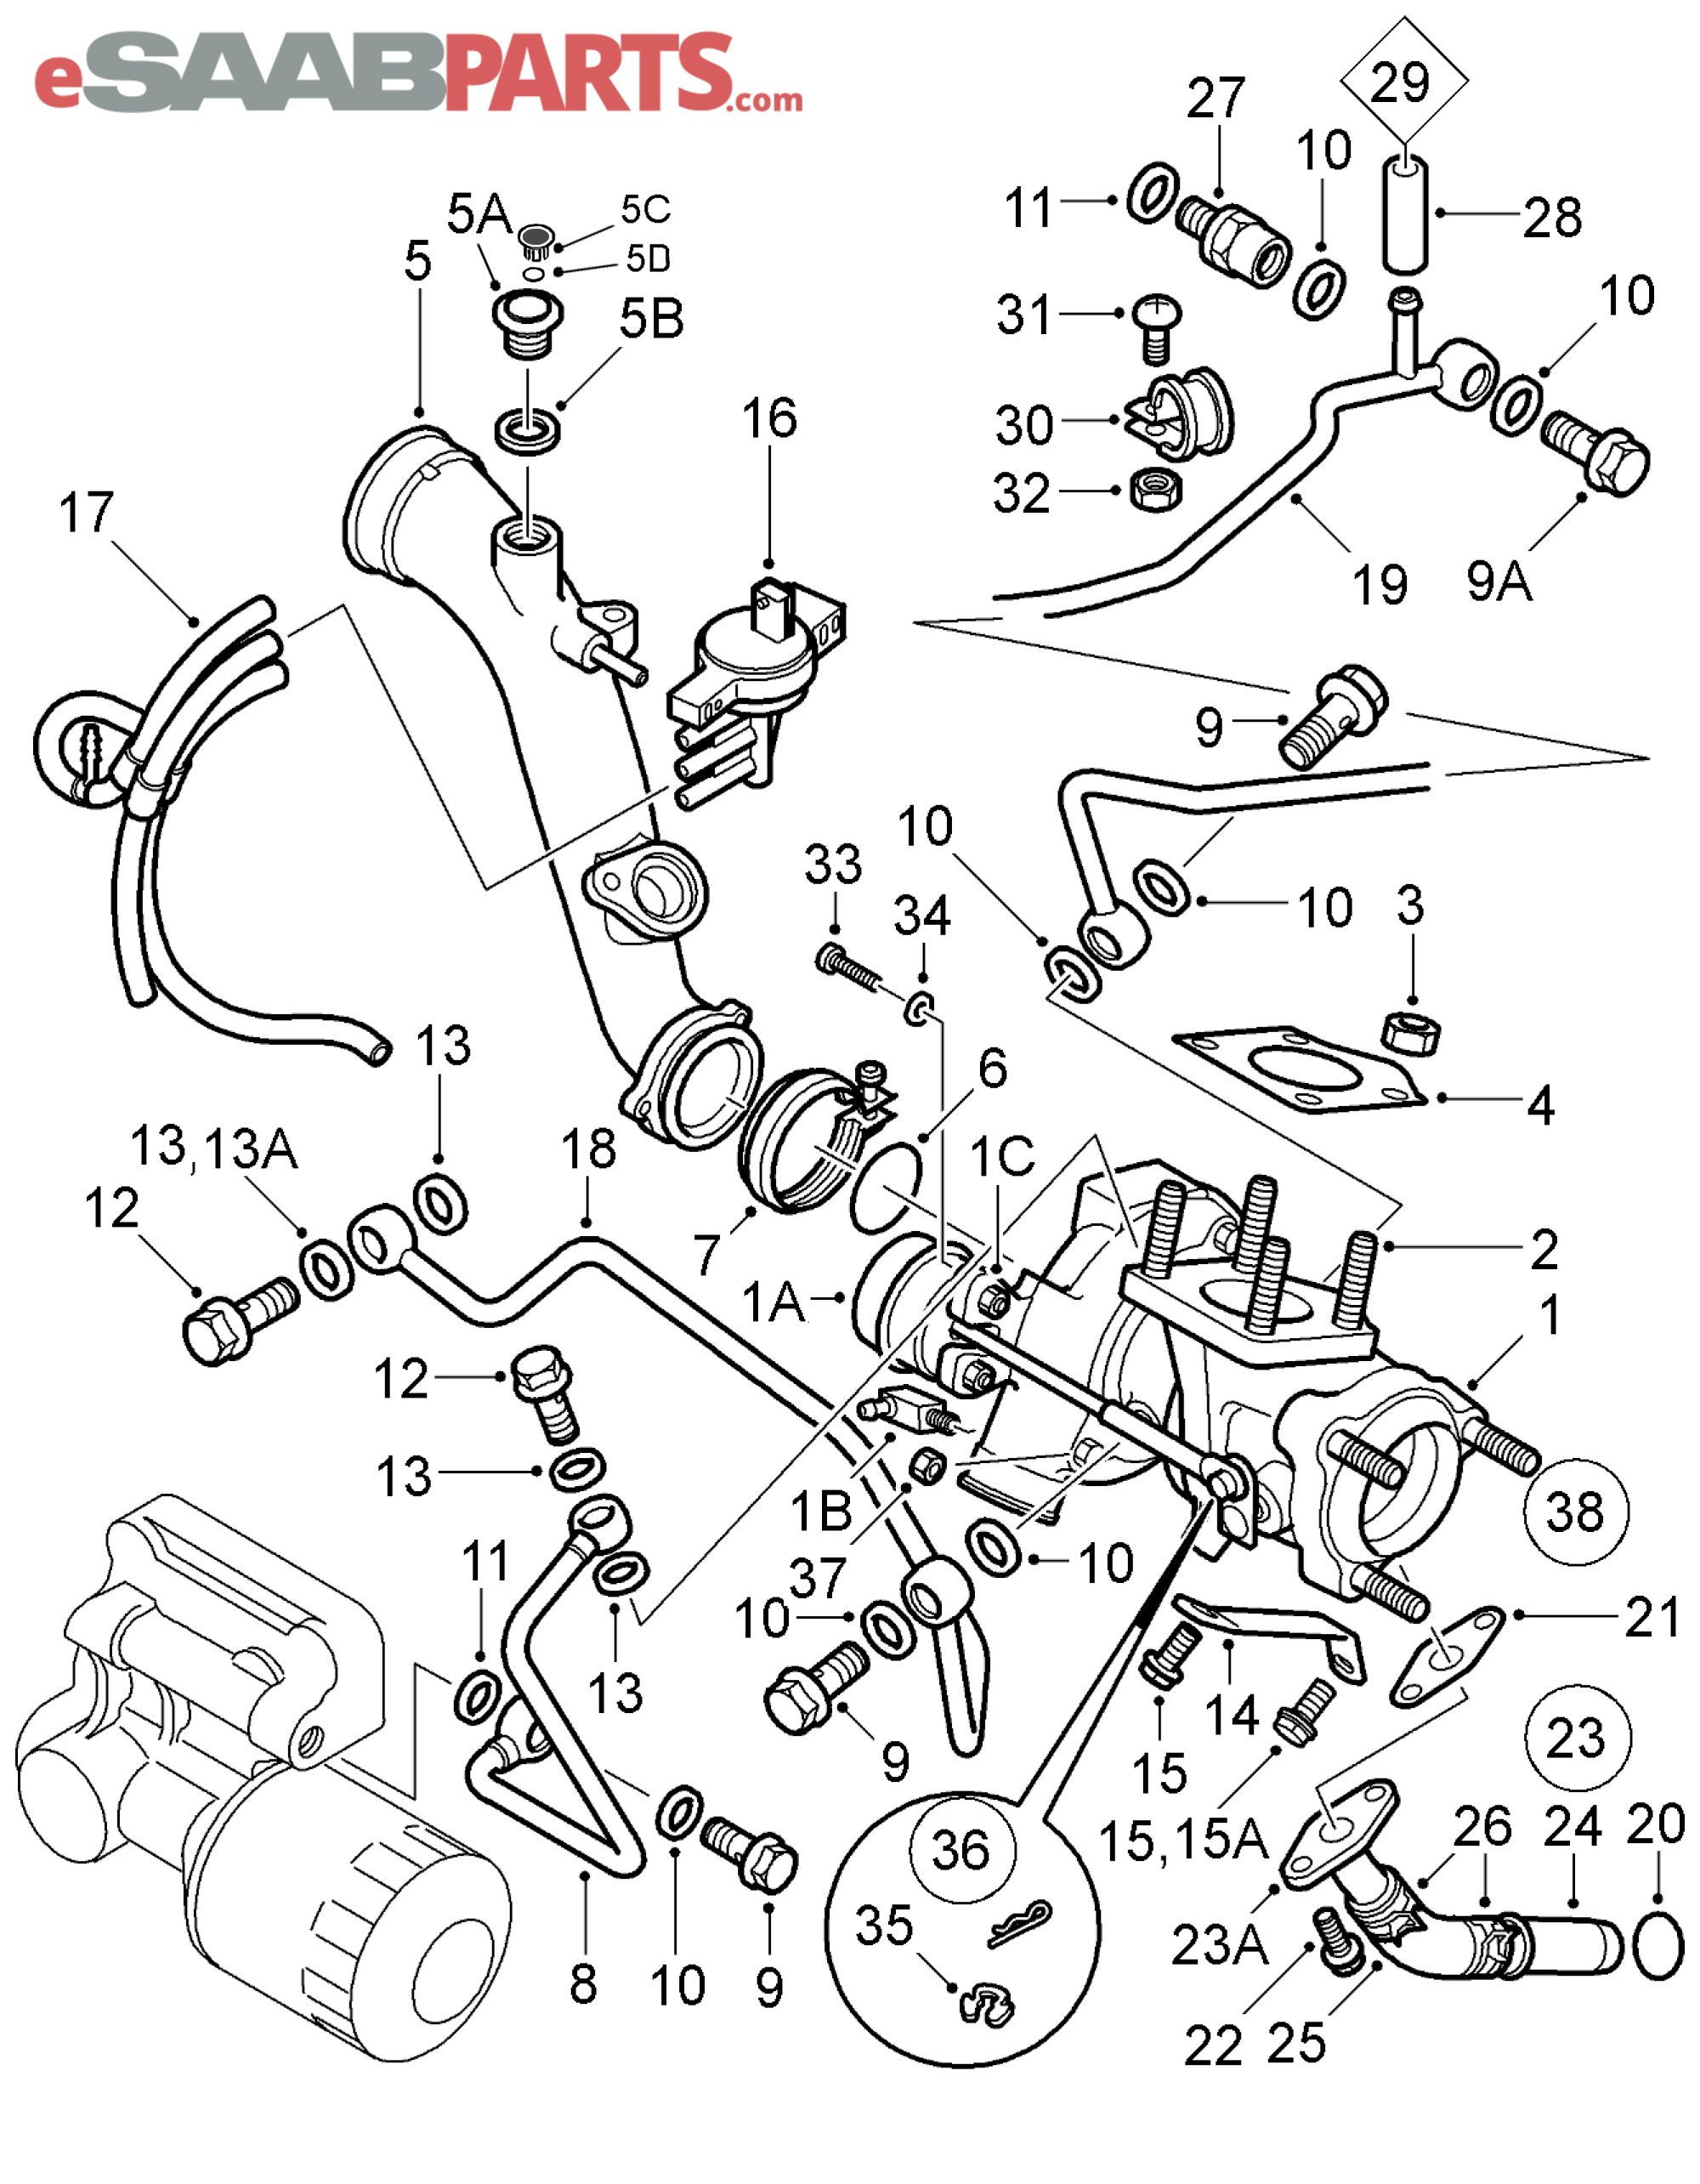 Engine Swap -  U0026 39 04 235e Into An  U0026 39 01 9-5 2 3t